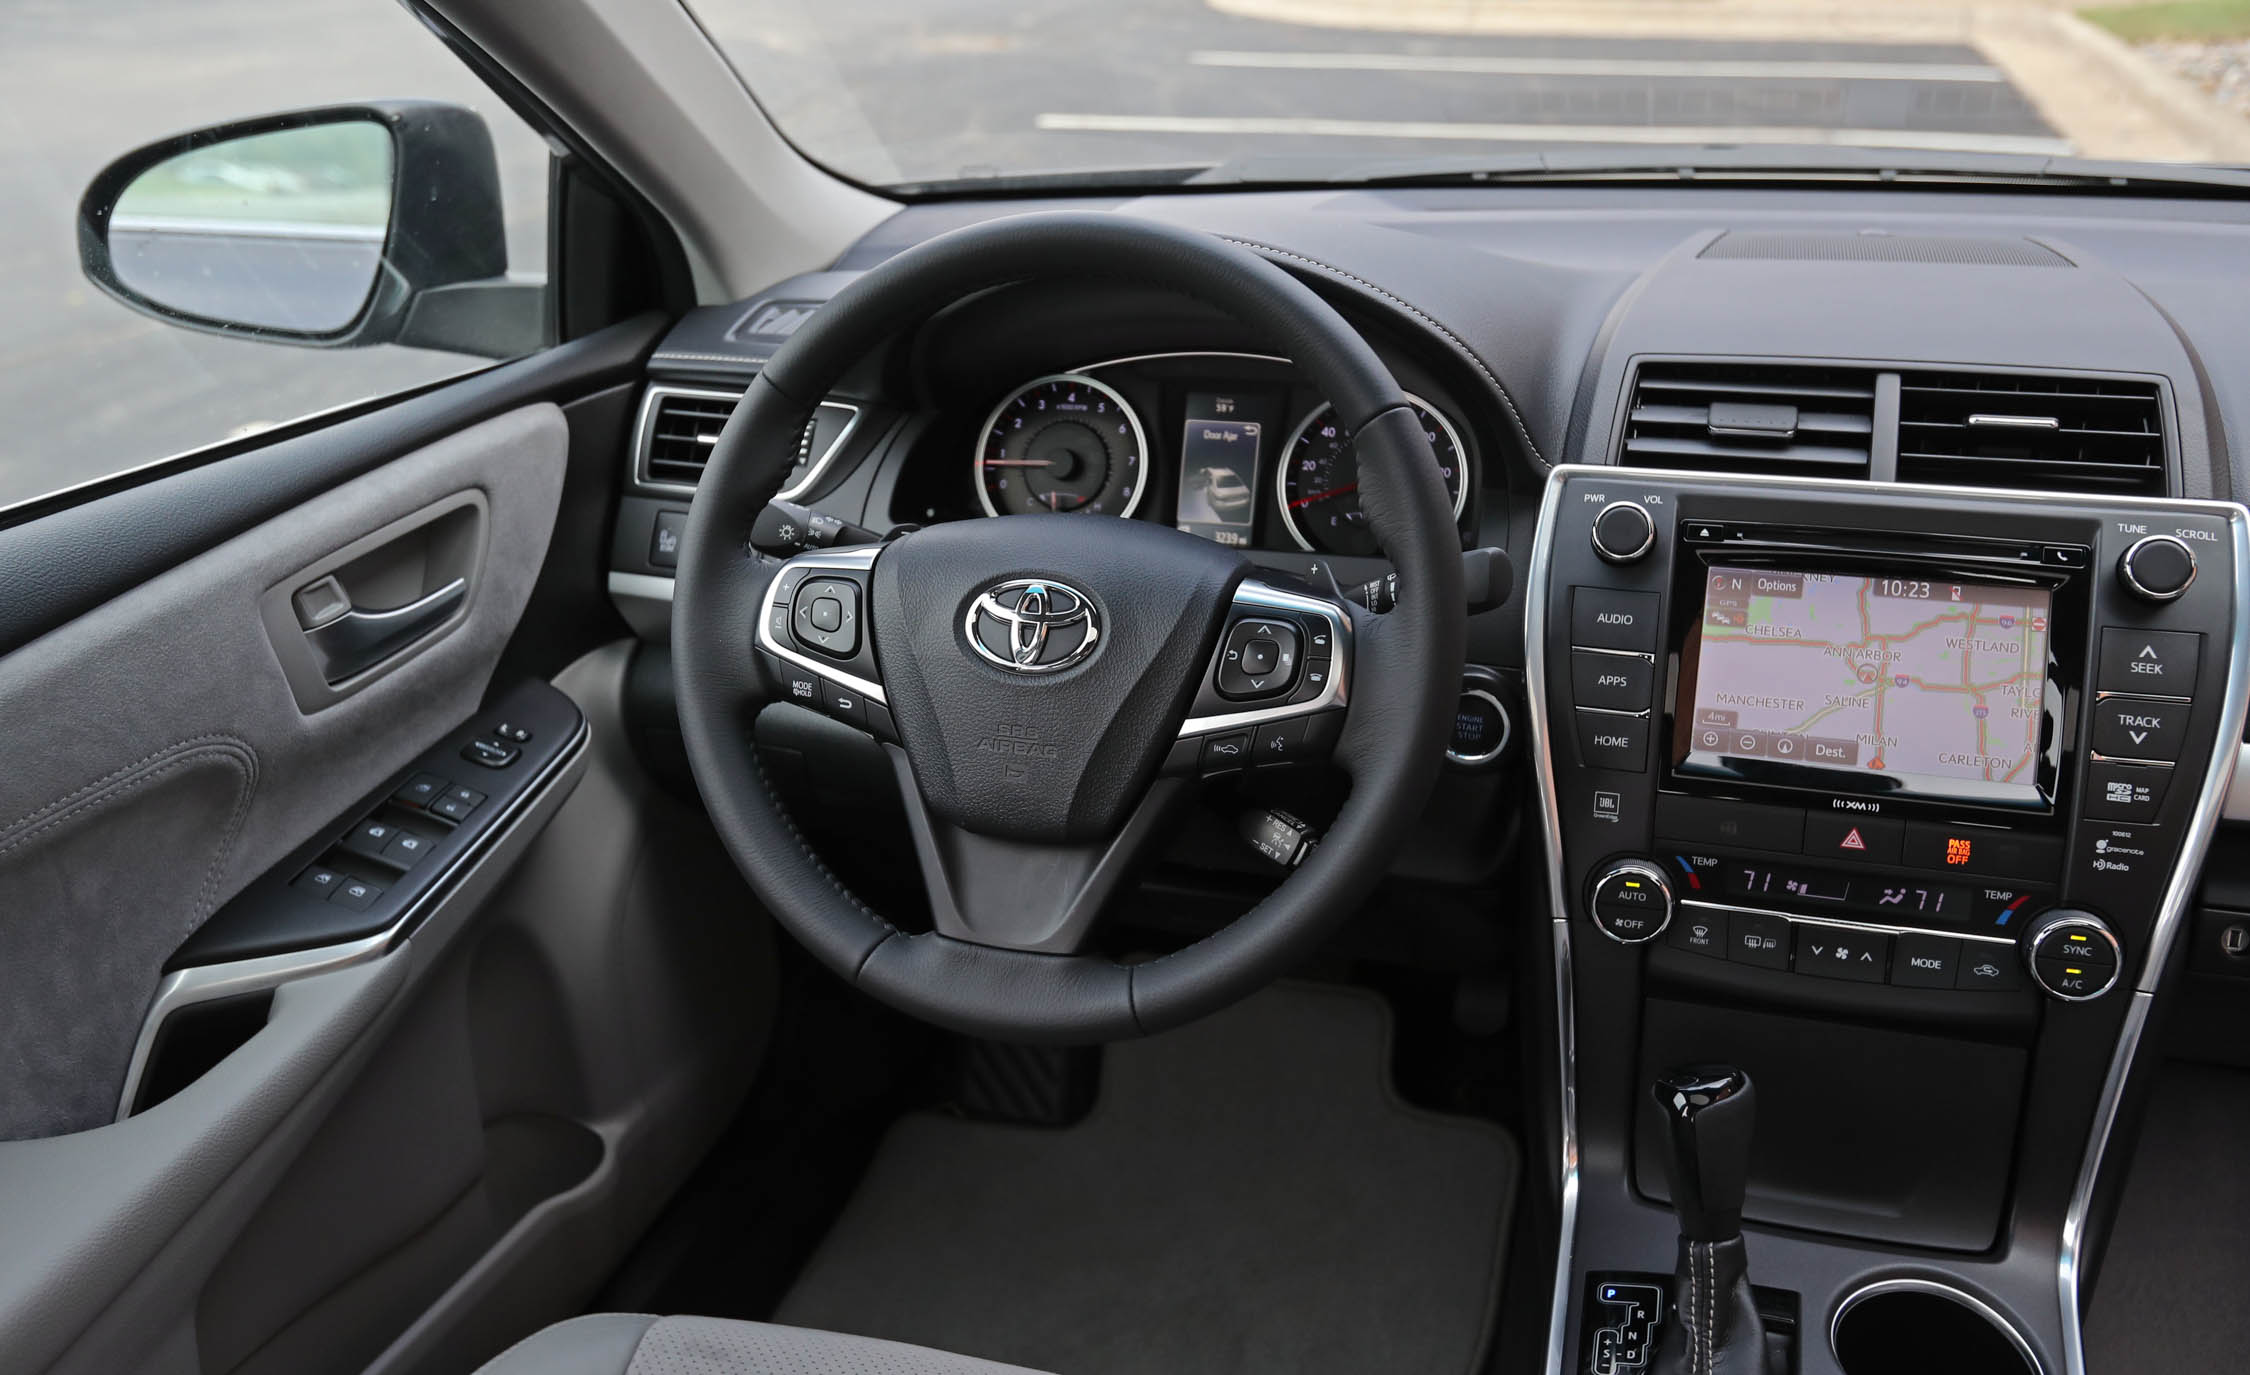 2017 Toyota Camry Interior View Steering Wheel (View 17 of 37)